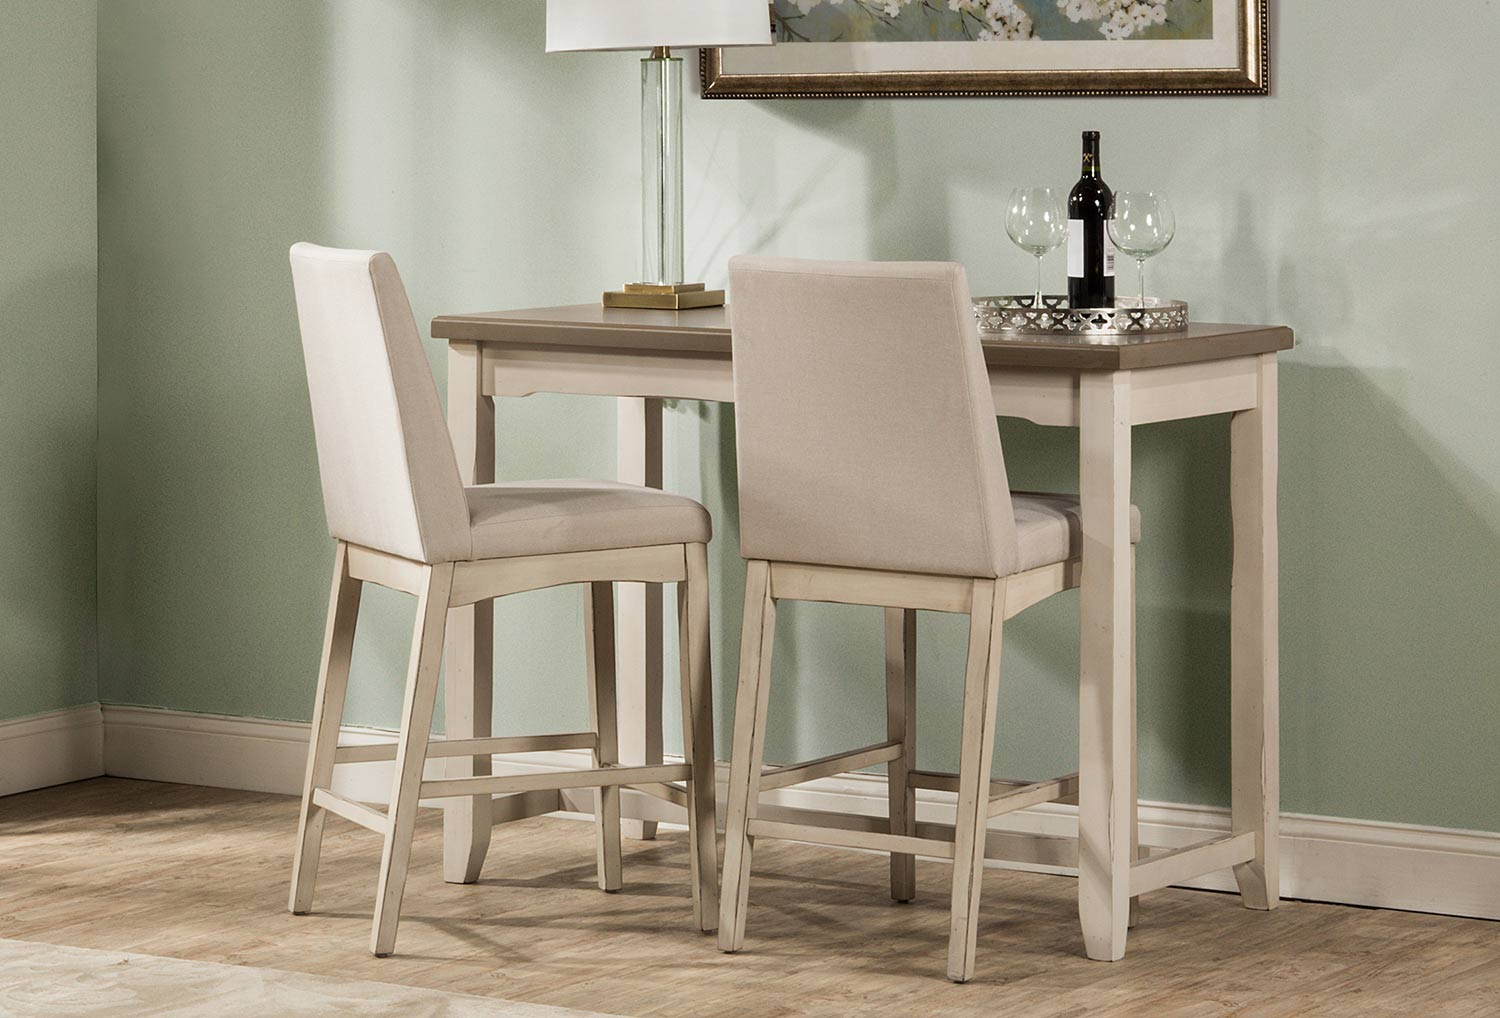 Hillsdale Clarion 3-Piece Counter Height Dining Set - Gray/White